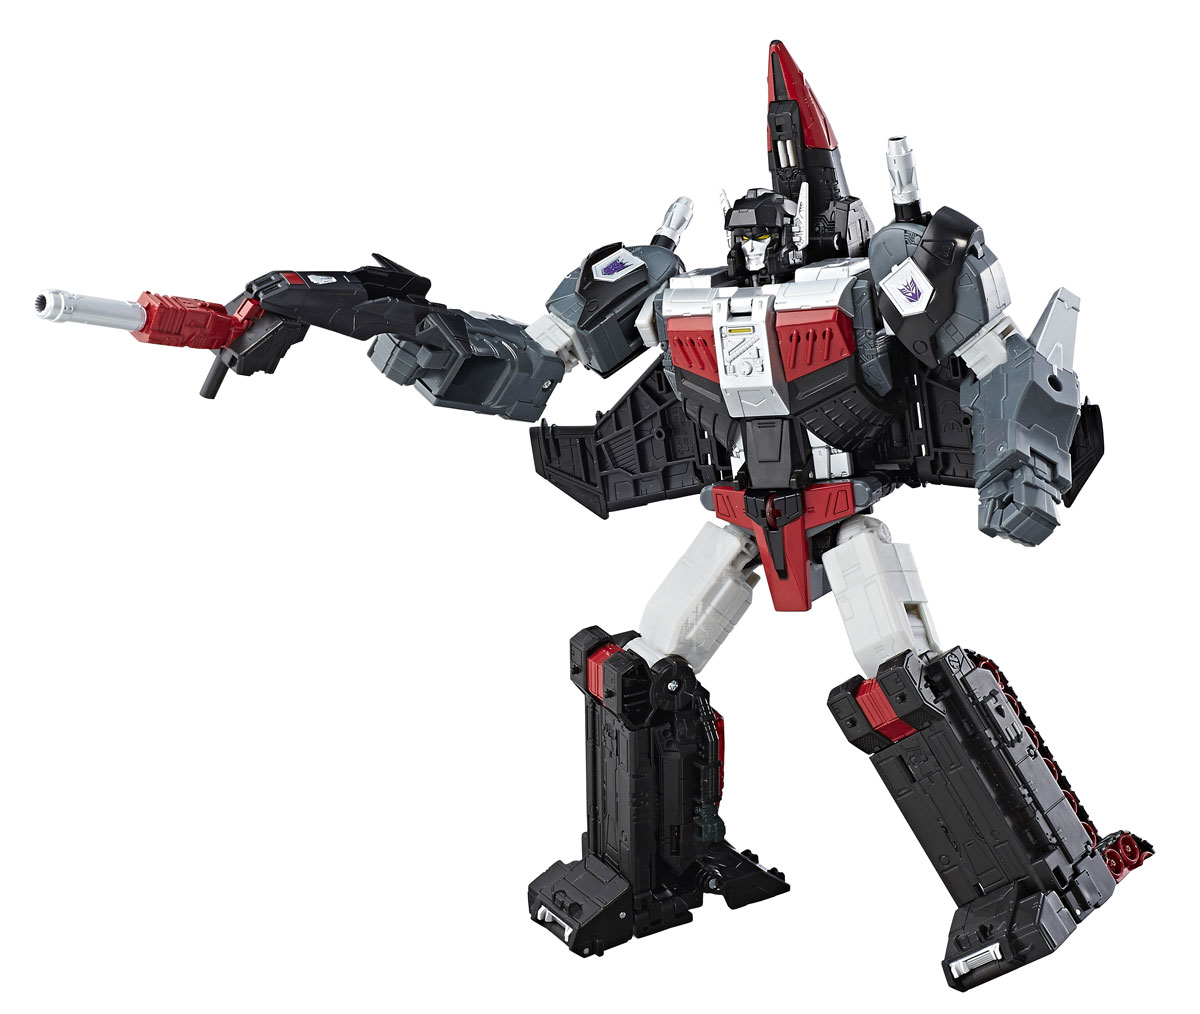 Transformers Трансформер Ominus & Sky Shadow transformers трансформер combiner force great byte & sideswipe